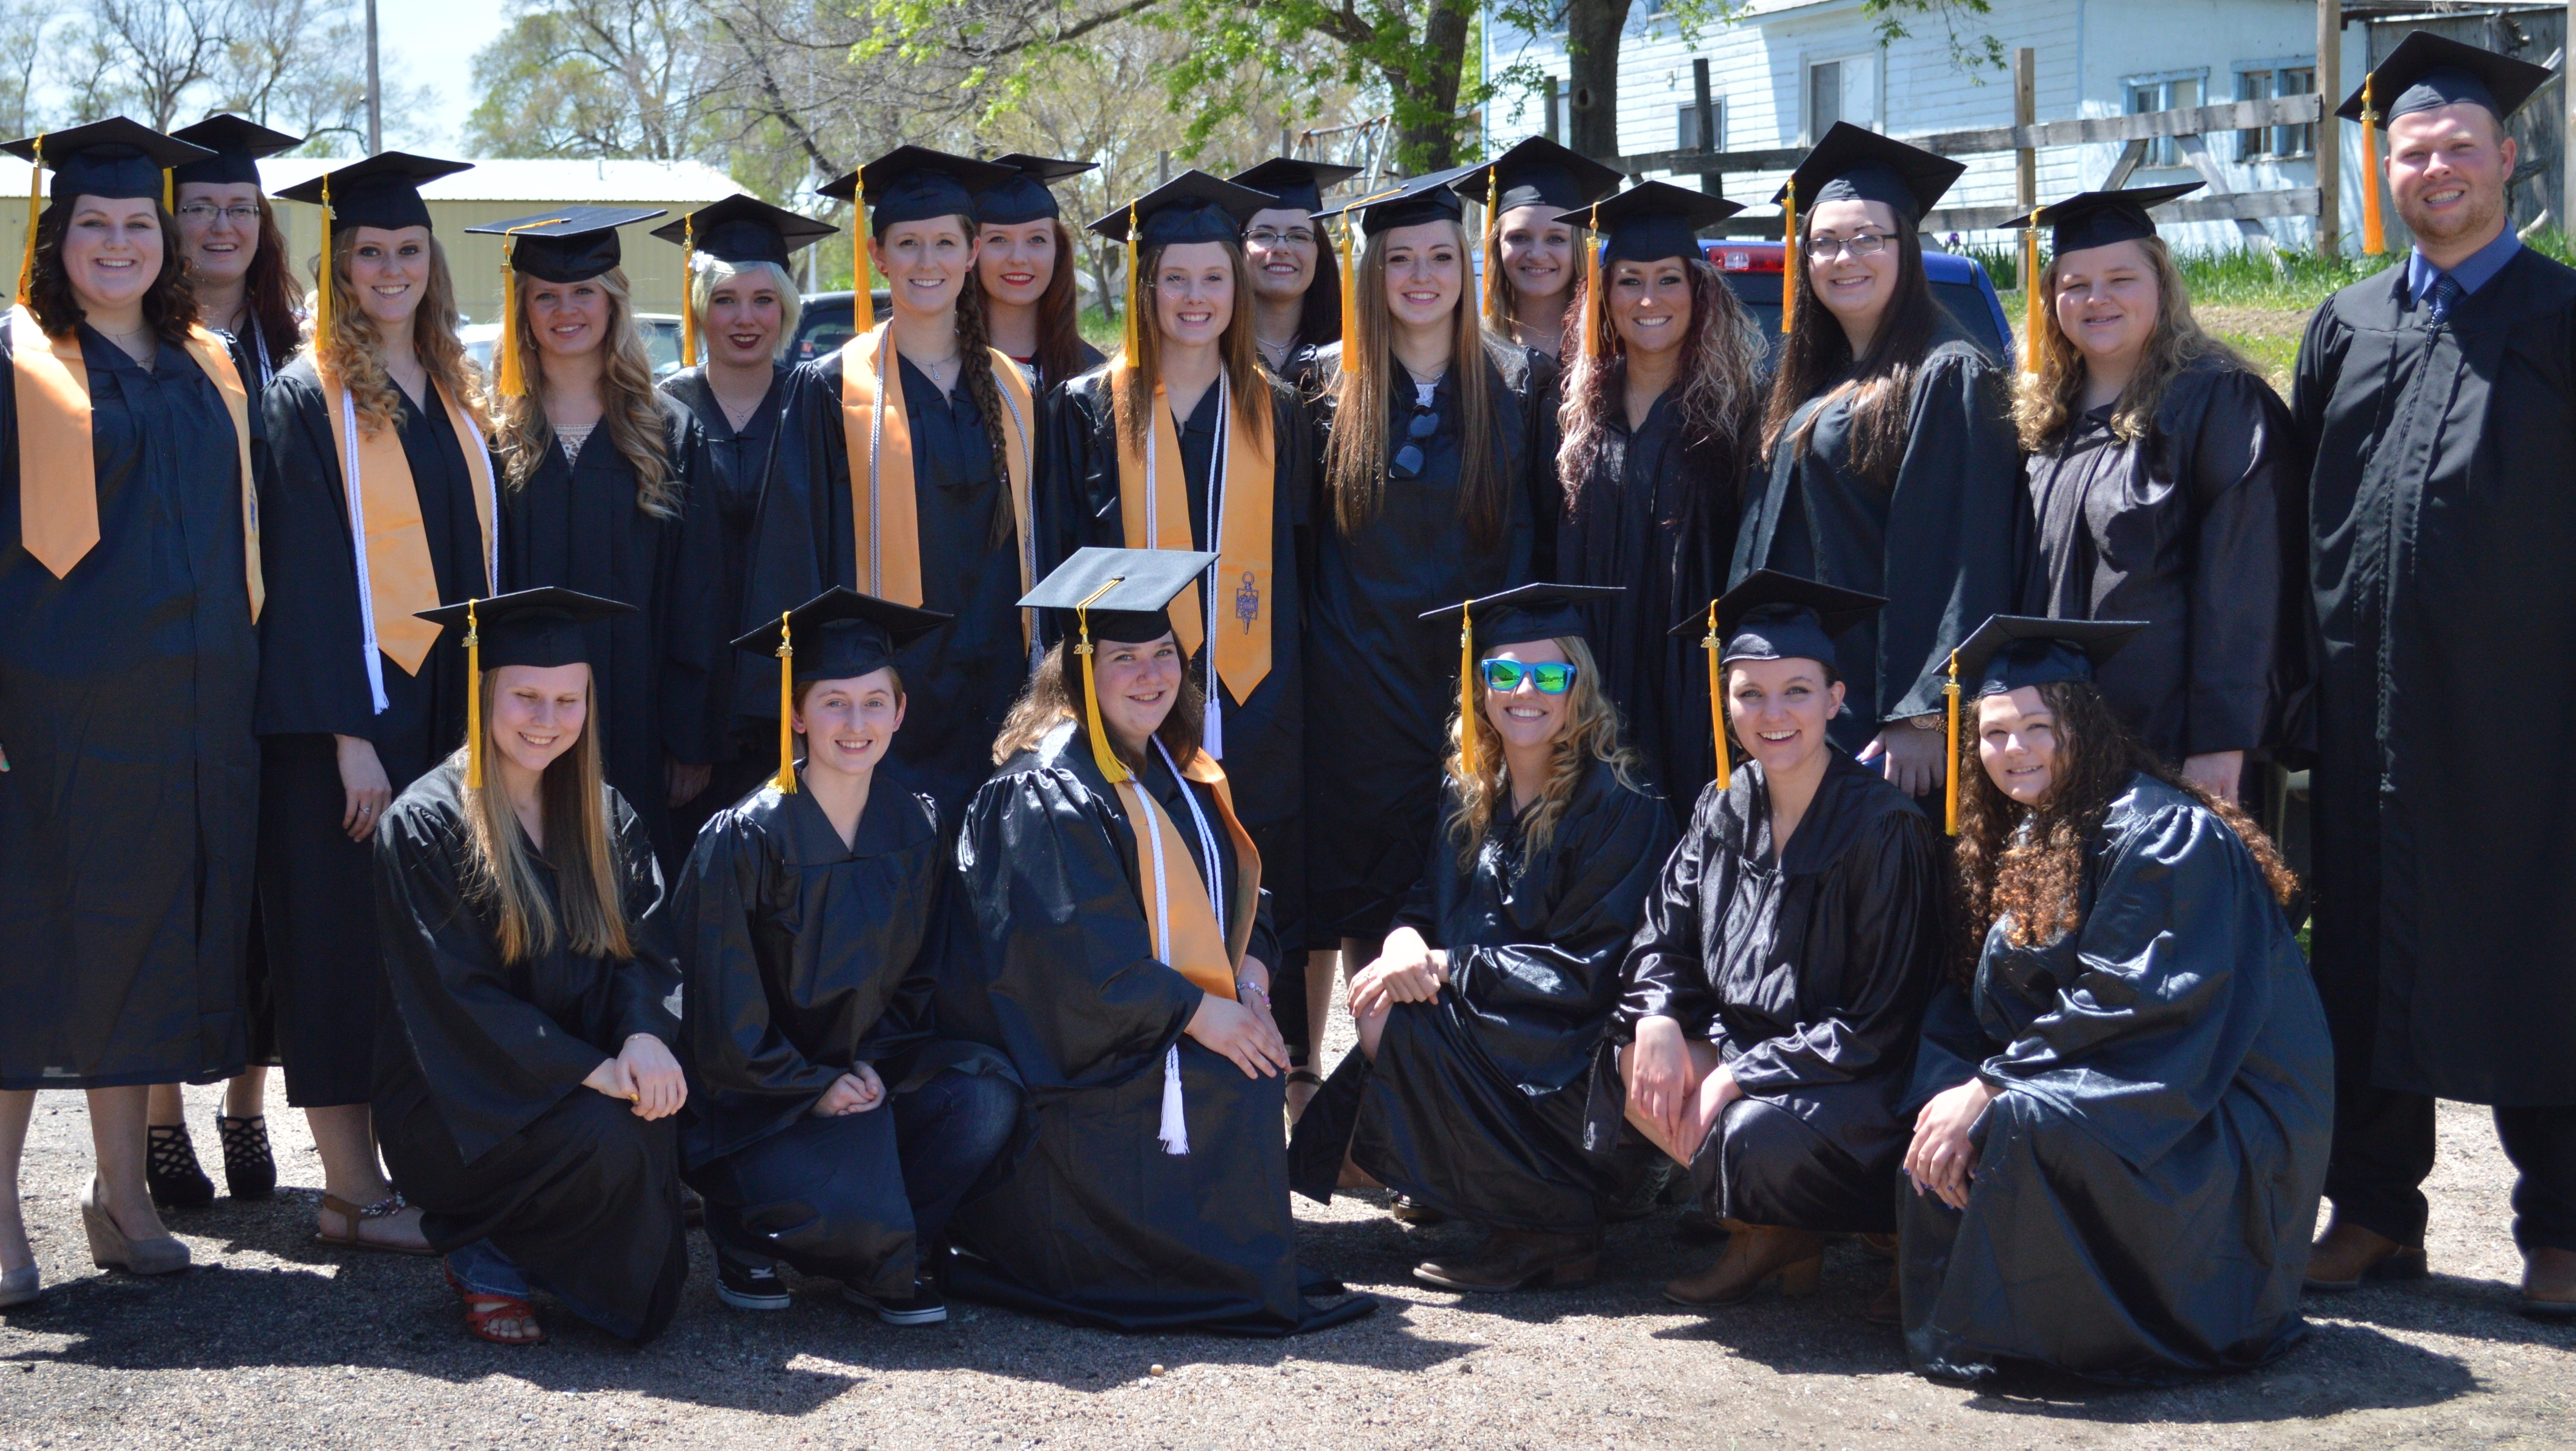 The Nebraska College of Technical Agriculture at Curtis announced the 2016 Dean's List and Honor Roll for the fall semester.  Students who graduated from NCTA's Veterinary Technology Division are shown here at the 2016 commencement. The graduates are now working as veterinary technicians, furthering their education in four-year degree programs, or employed in various capacities in agricultural production or animal health. (NCTA file photo)